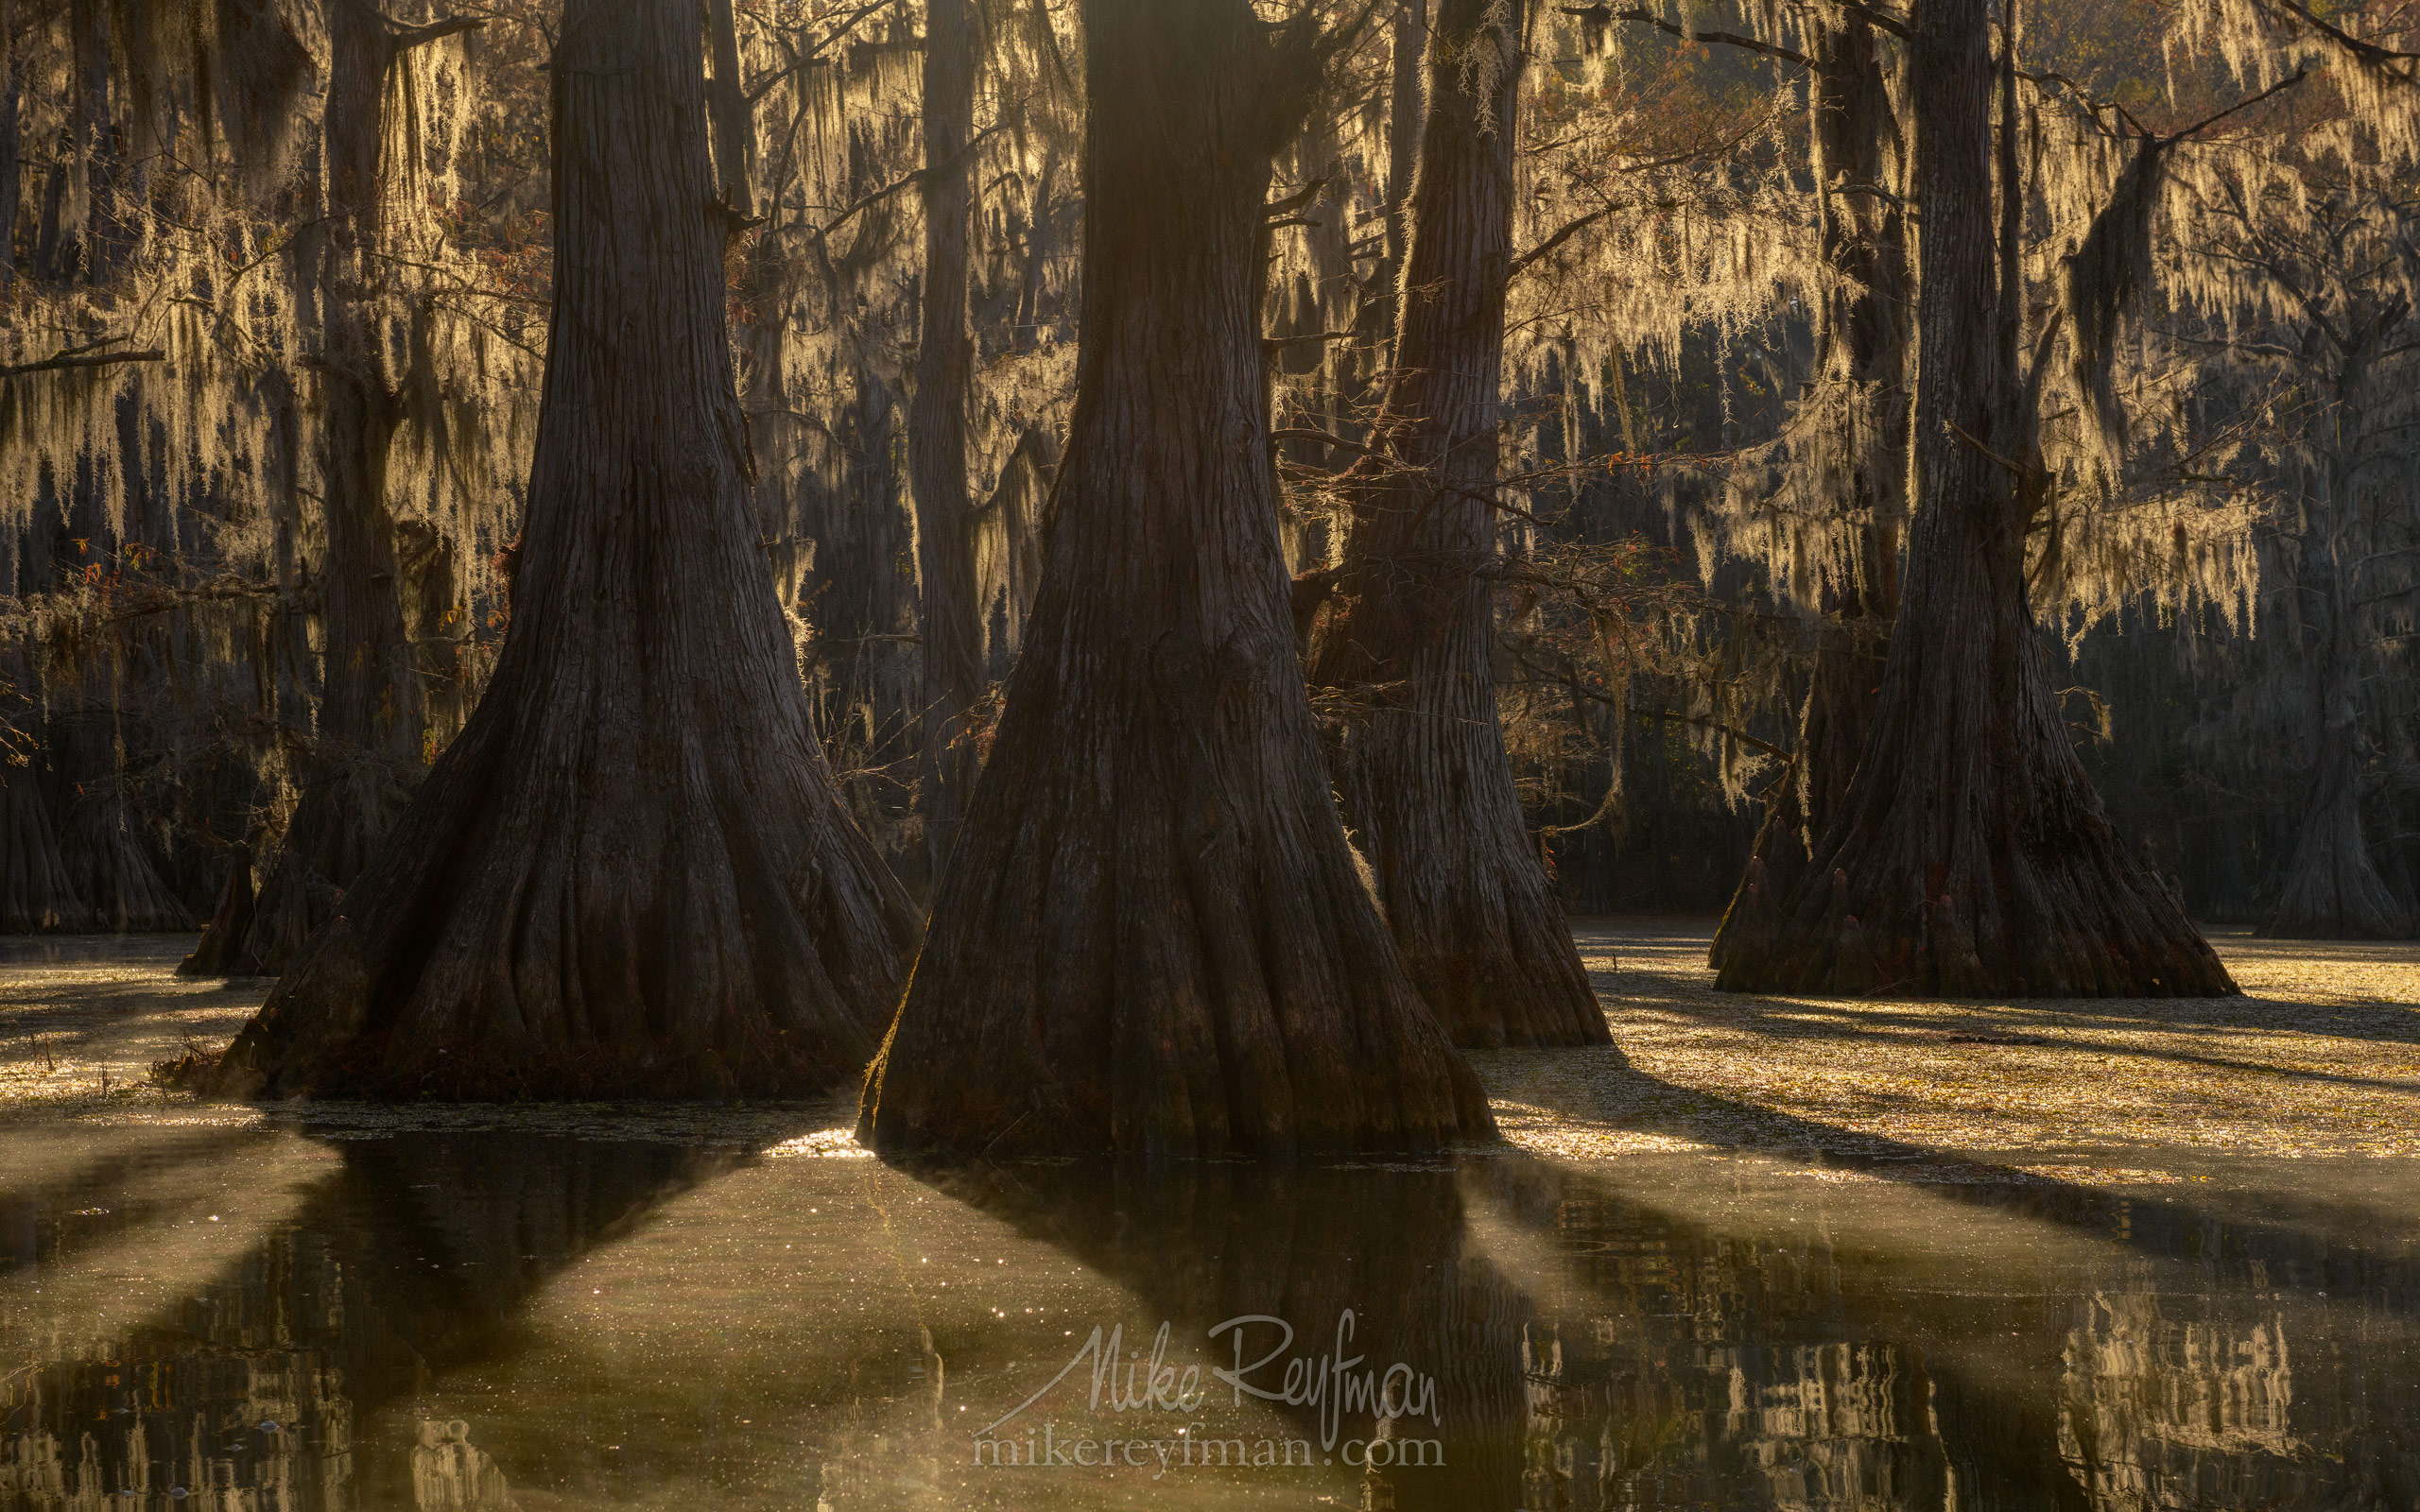 Bald Cypress trees in the swamp. Foggy morning on Caddo Lake, Texas, US 045-LT1-50A3680.jpg - Bold Cypress and Tupelo Trees in the swamps of Atchafalaya River Basin. Caddo, Martin and Fousse Lakes. Texas/Louisiana, USA. - Mike Reyfman Photography